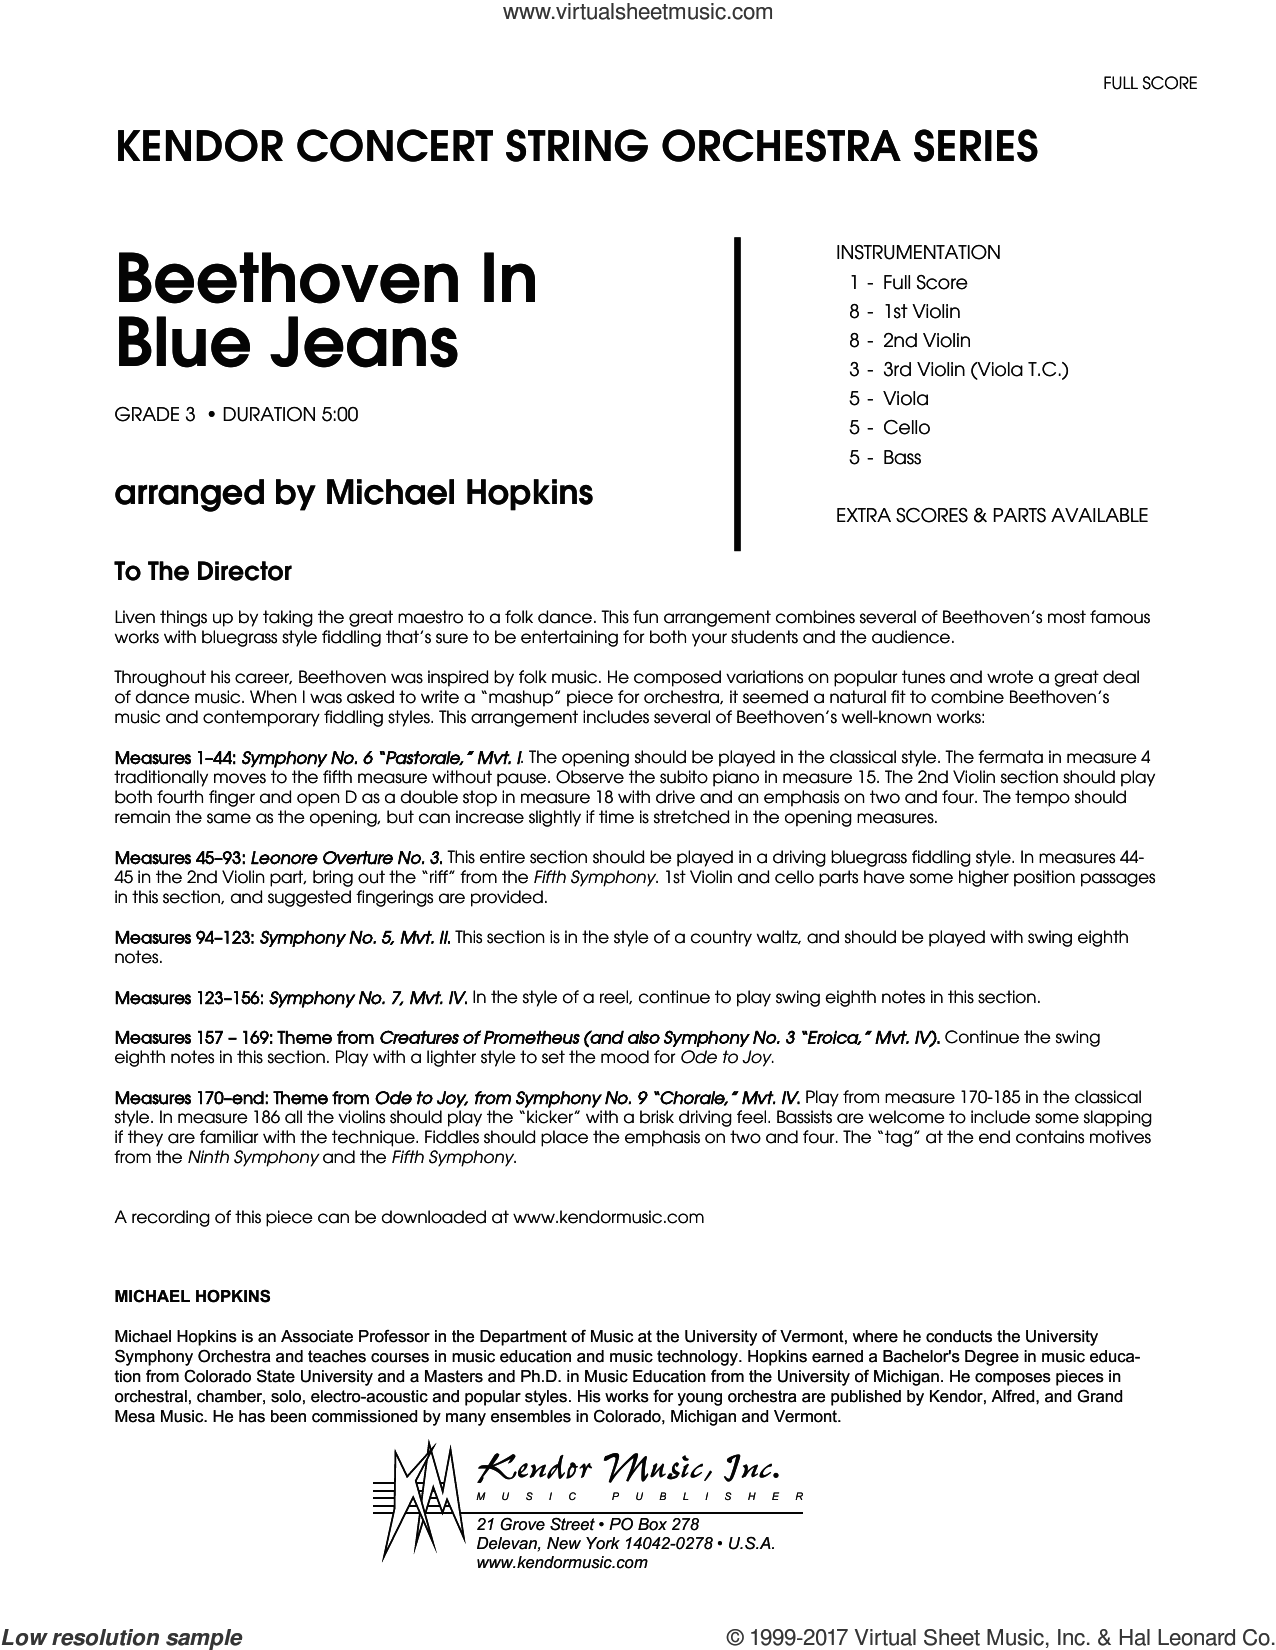 Beethoven - Beethoven In Blue Jeans sheet music (complete collection) for  orchestra